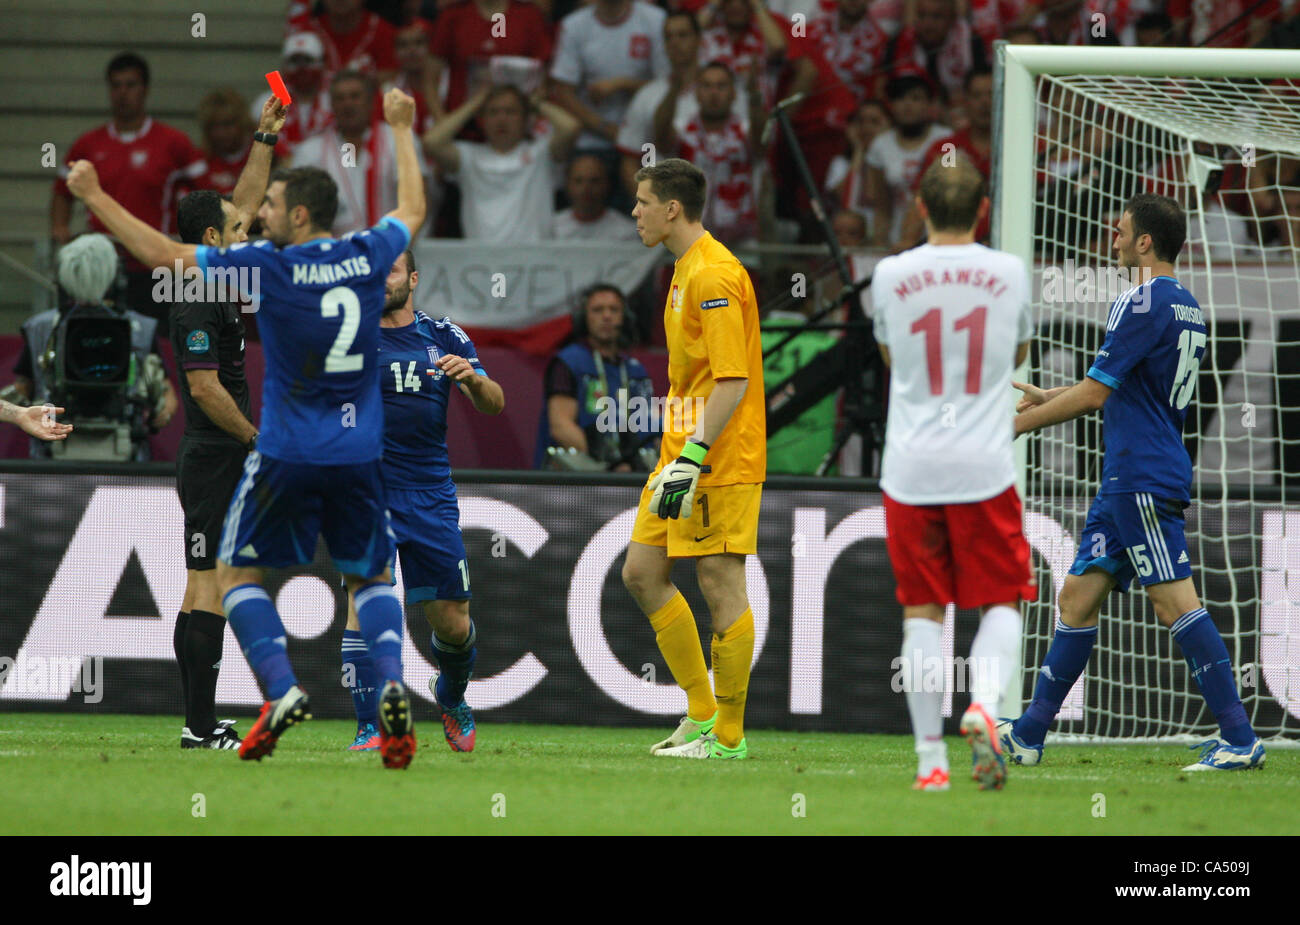 08.06.2012.  Warsaw, Poland. EURO 2012, FOOTBALL EUROPEAN CHAMPIONSHIP, Poland versus Greece.  The penalty is given - Stock Image